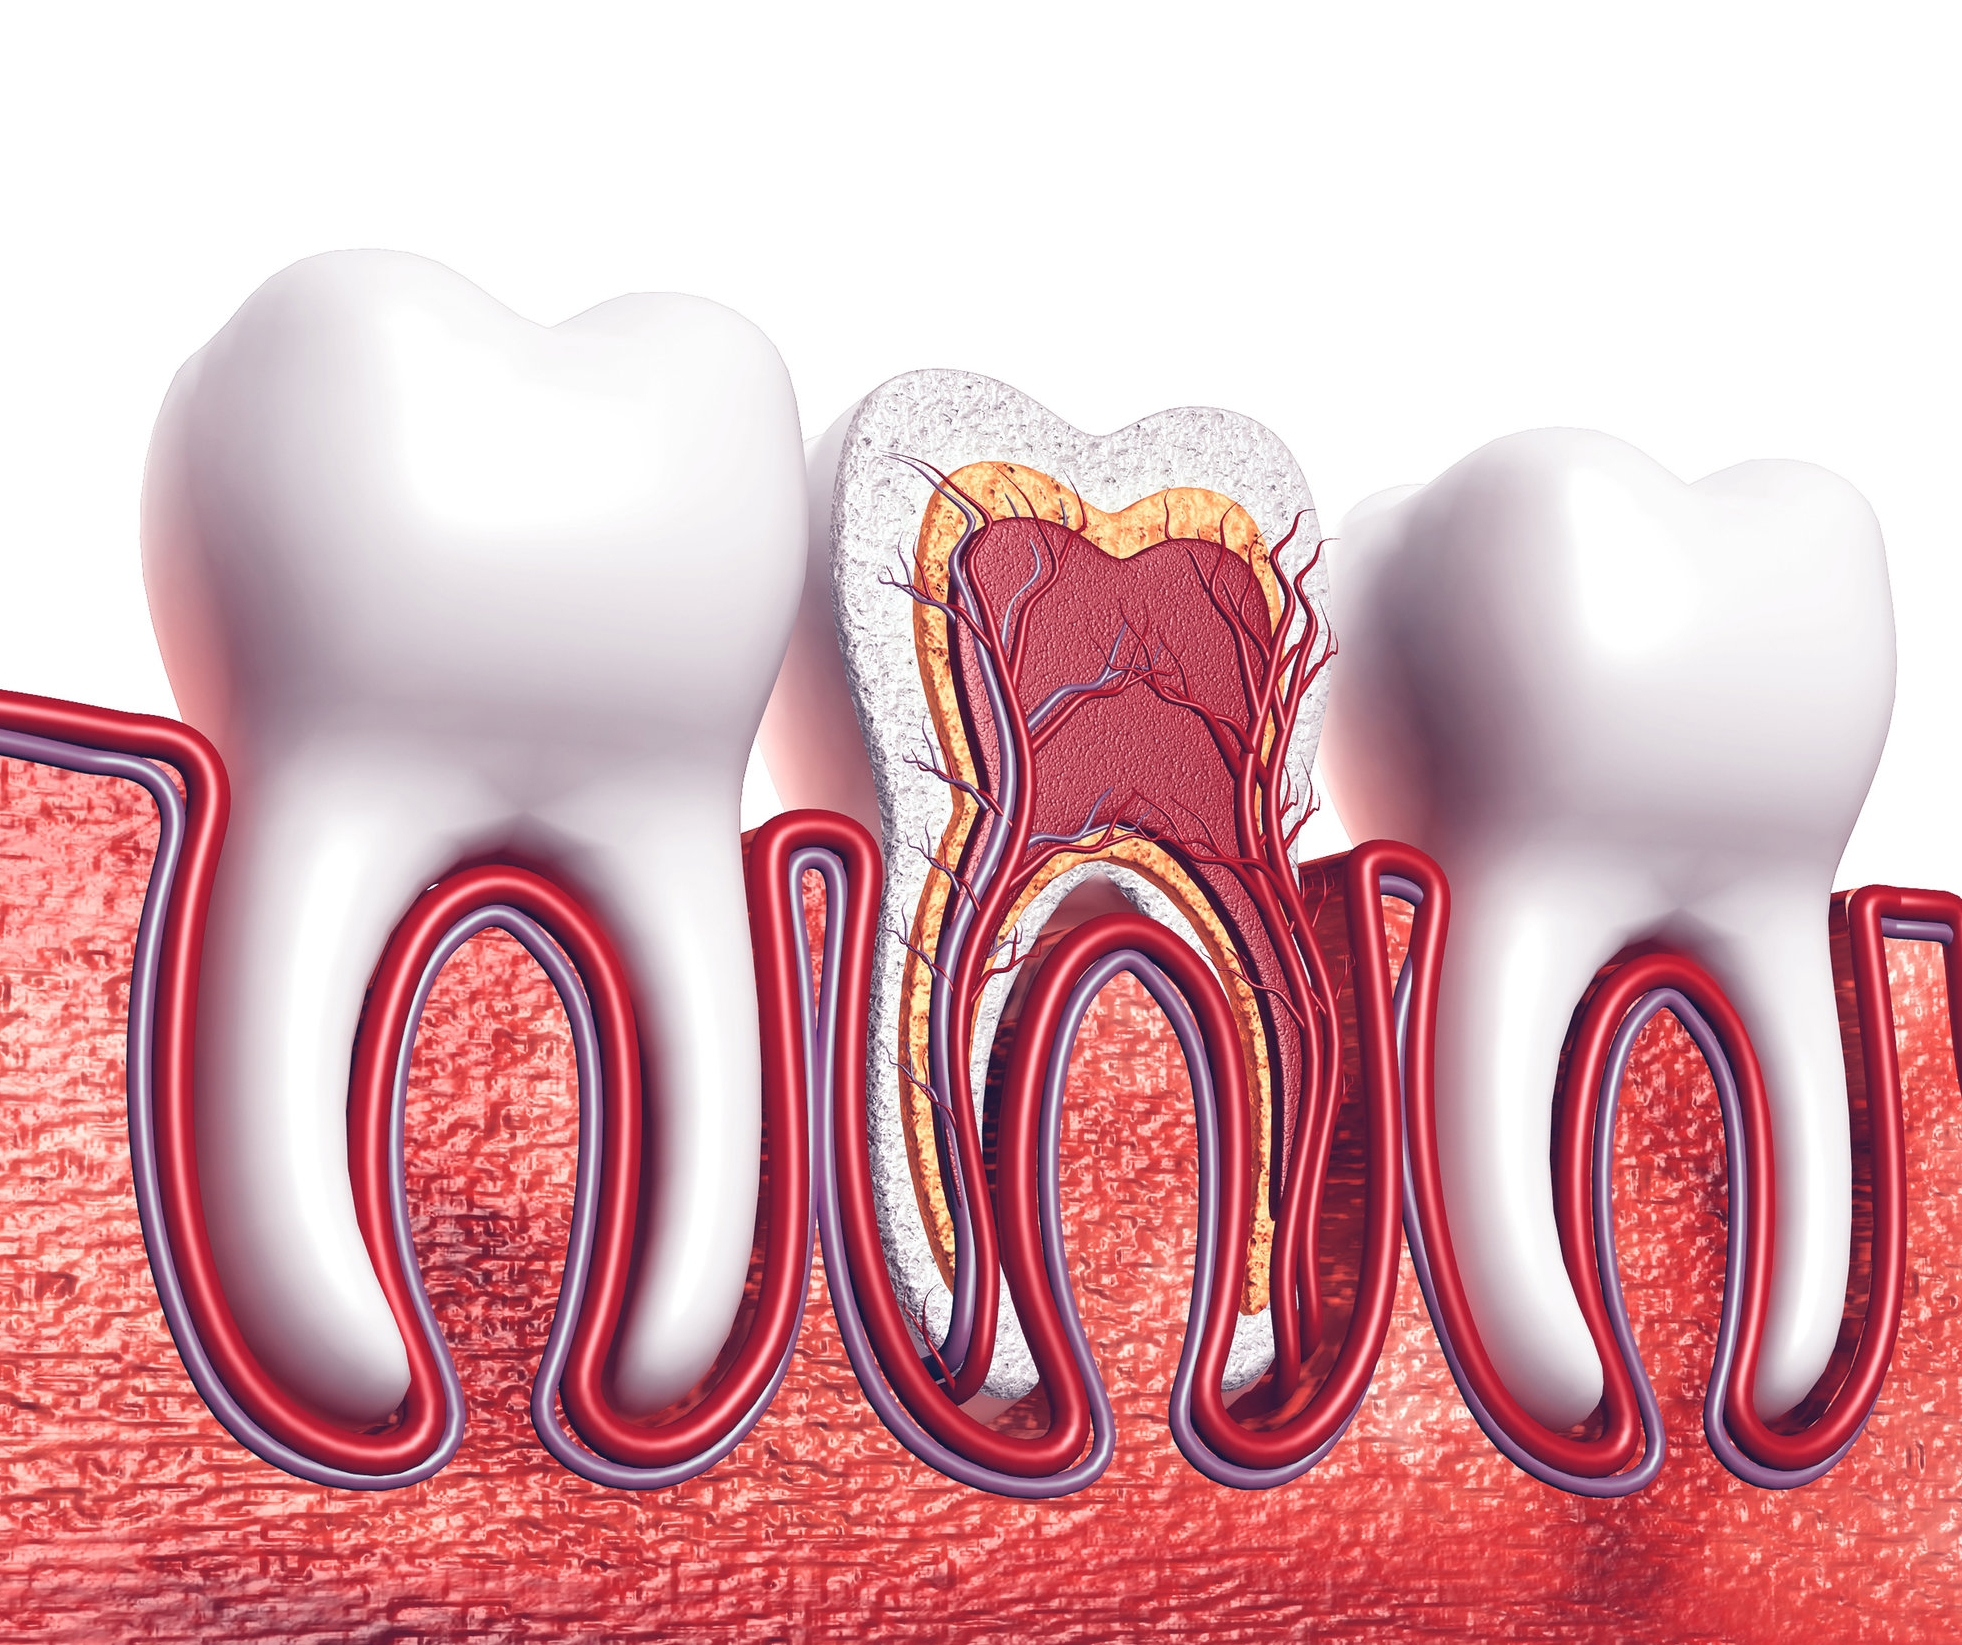 root canal therapy Geelong Dental Centre.jpg